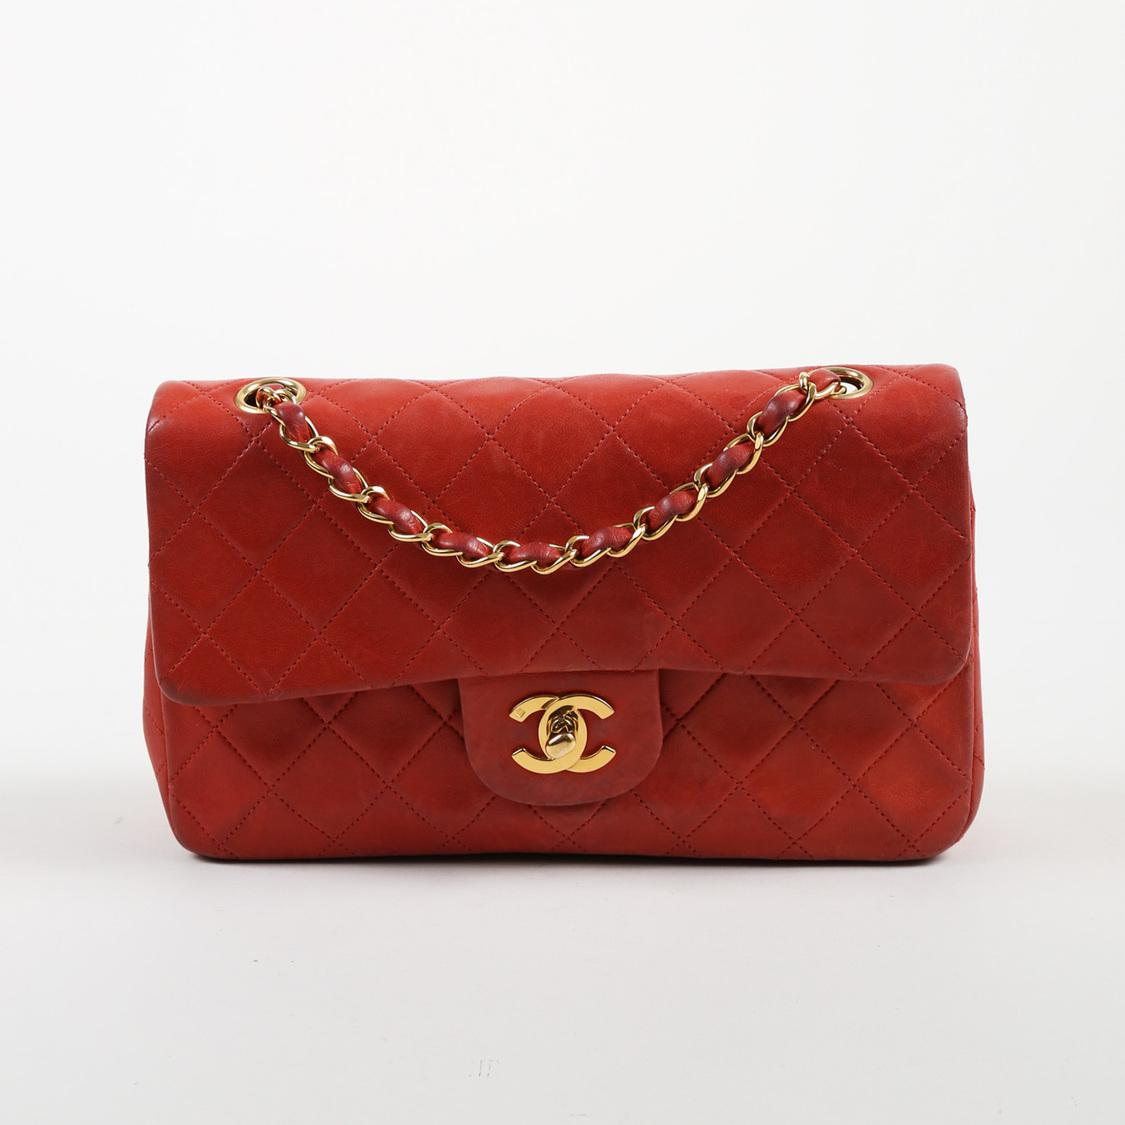 29eae0f88e55bf Chanel Vintage Red Quilted Lambskin Leather